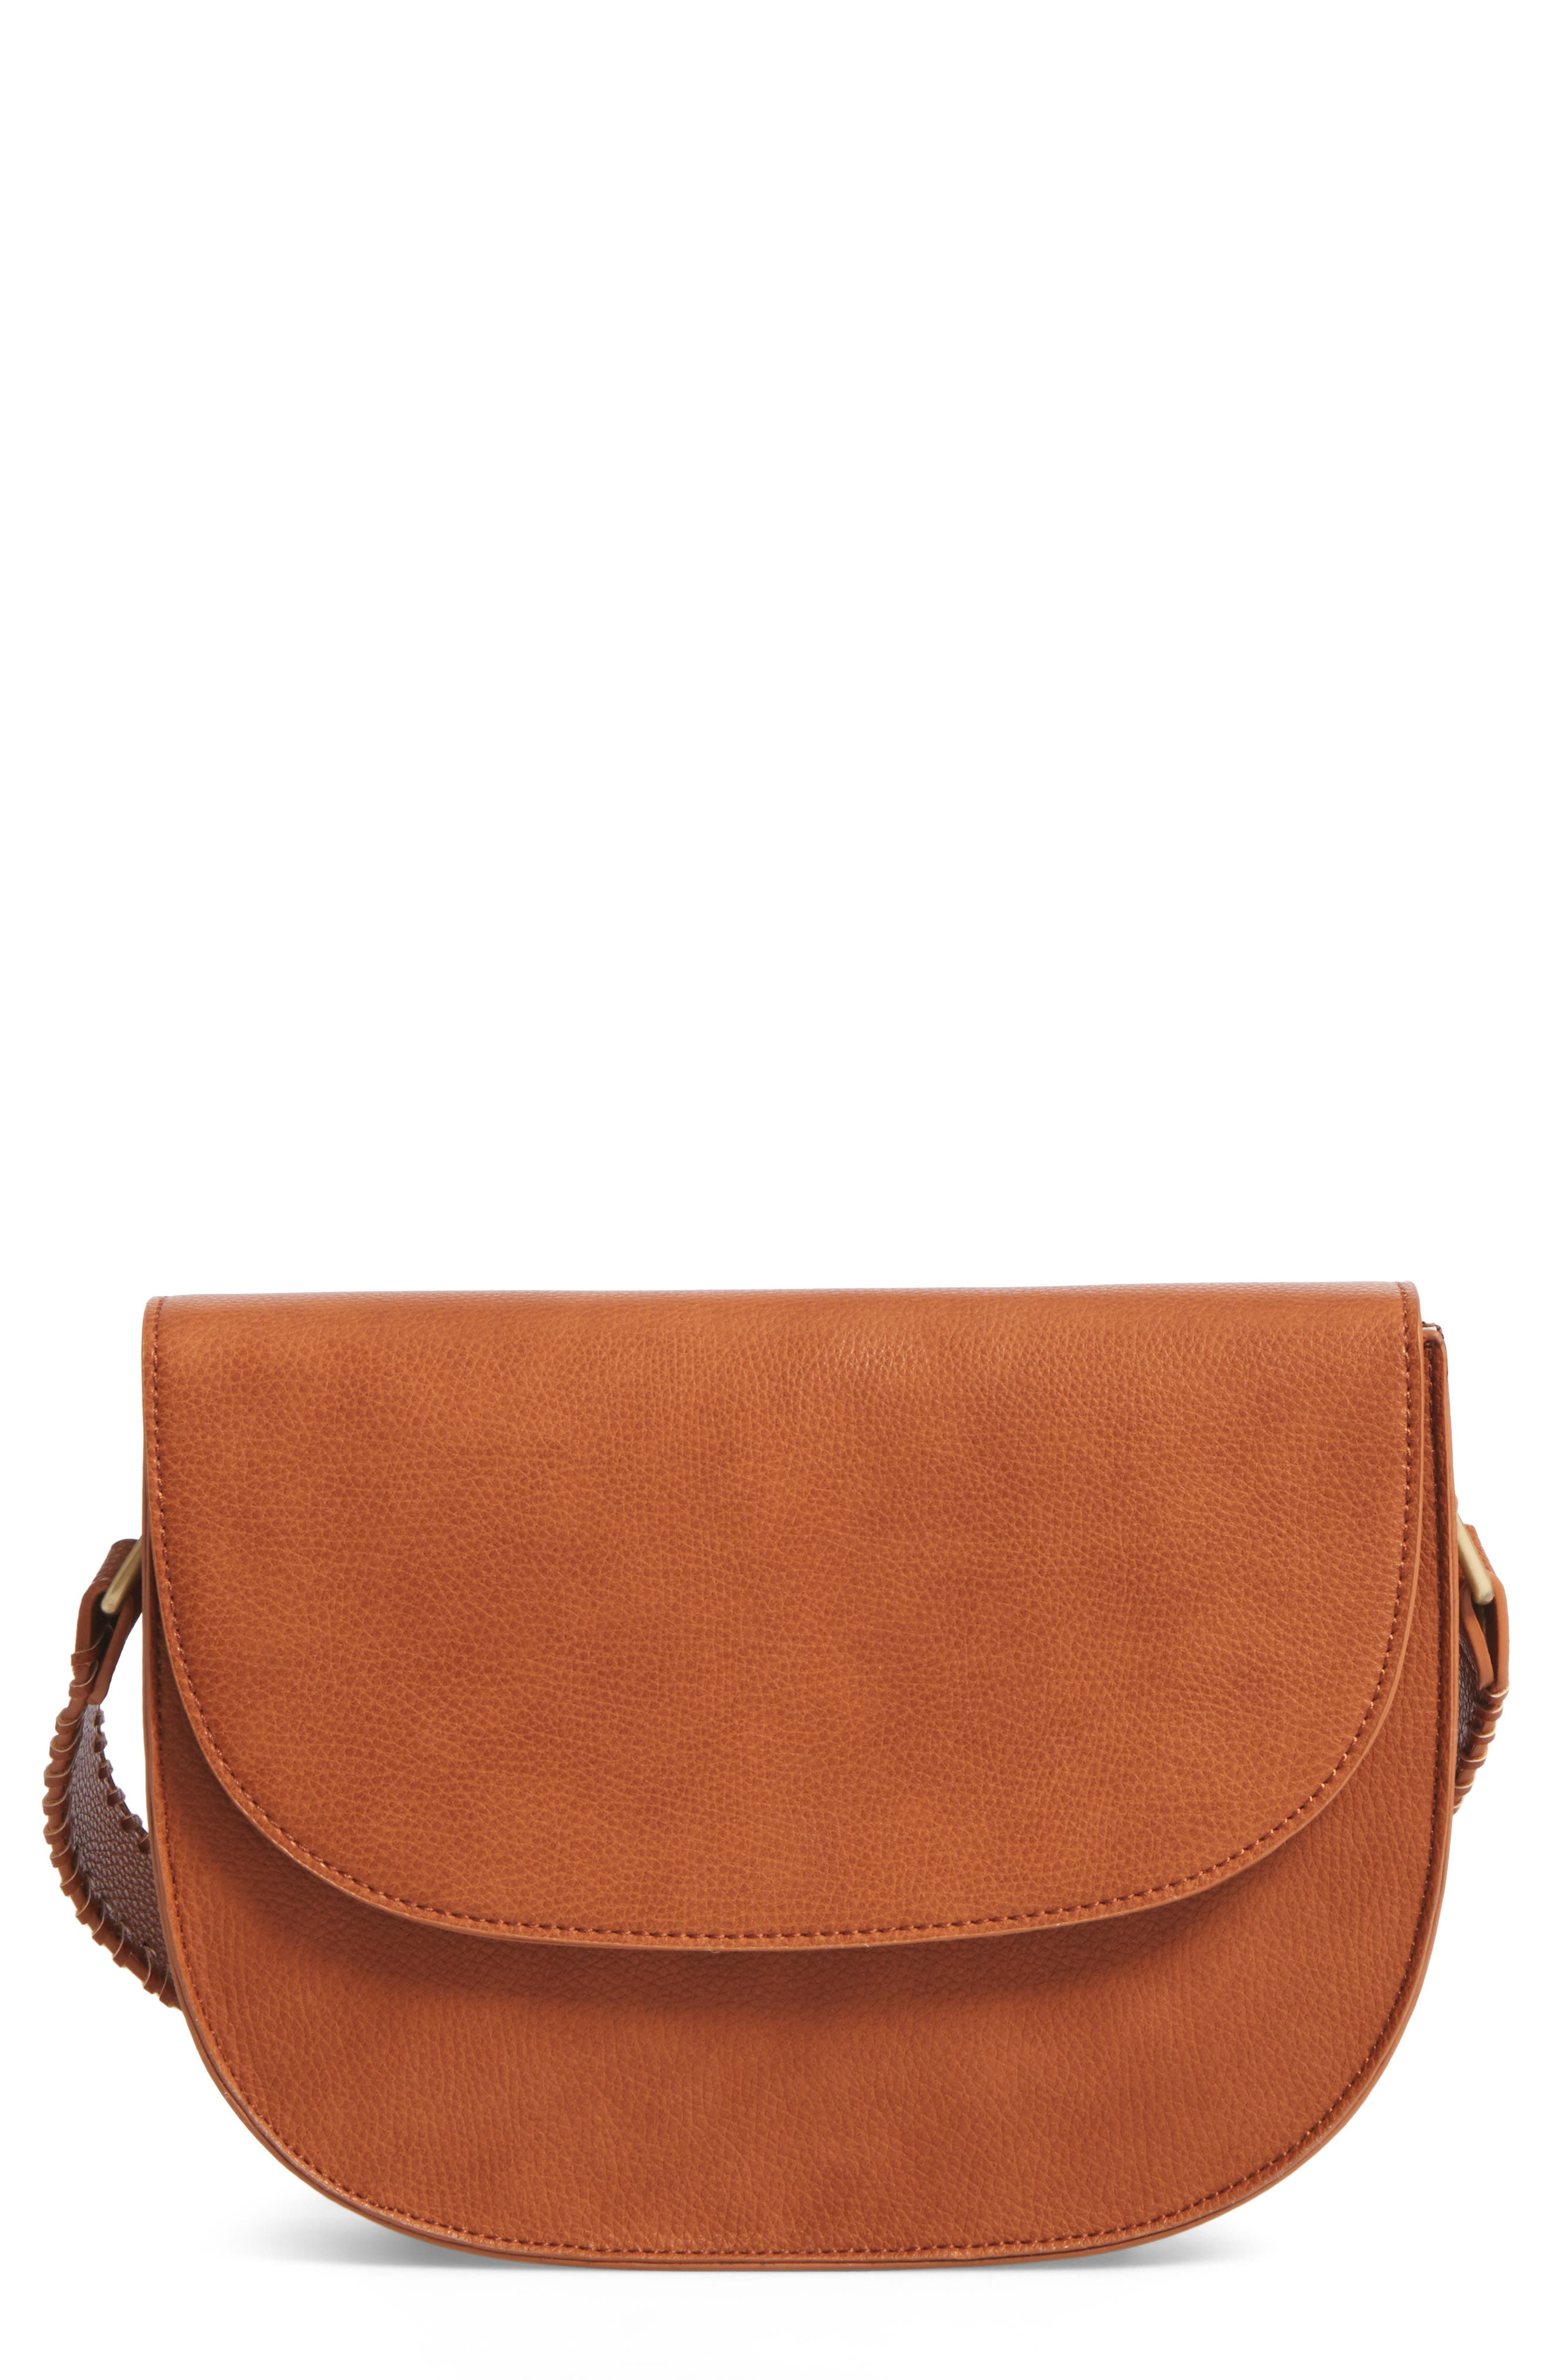 Sole Society Honor Faux Leather Messenger Bag